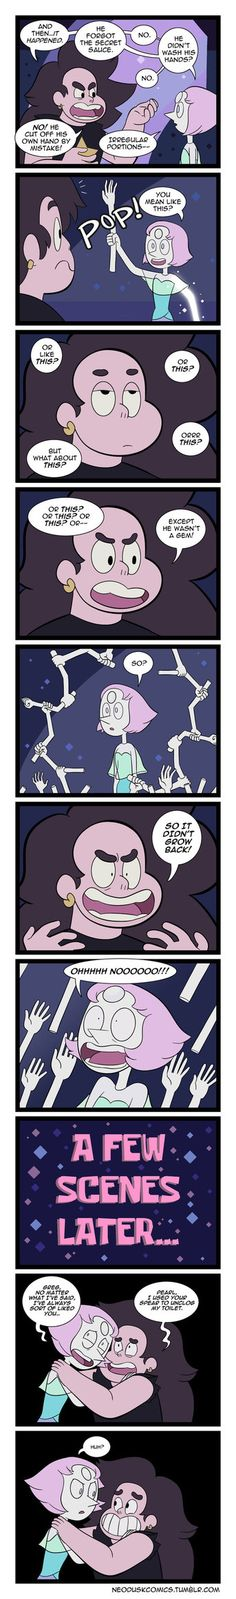 Steven Universe: The Gem Slashing Slinker by Neodusk on DeviantArt